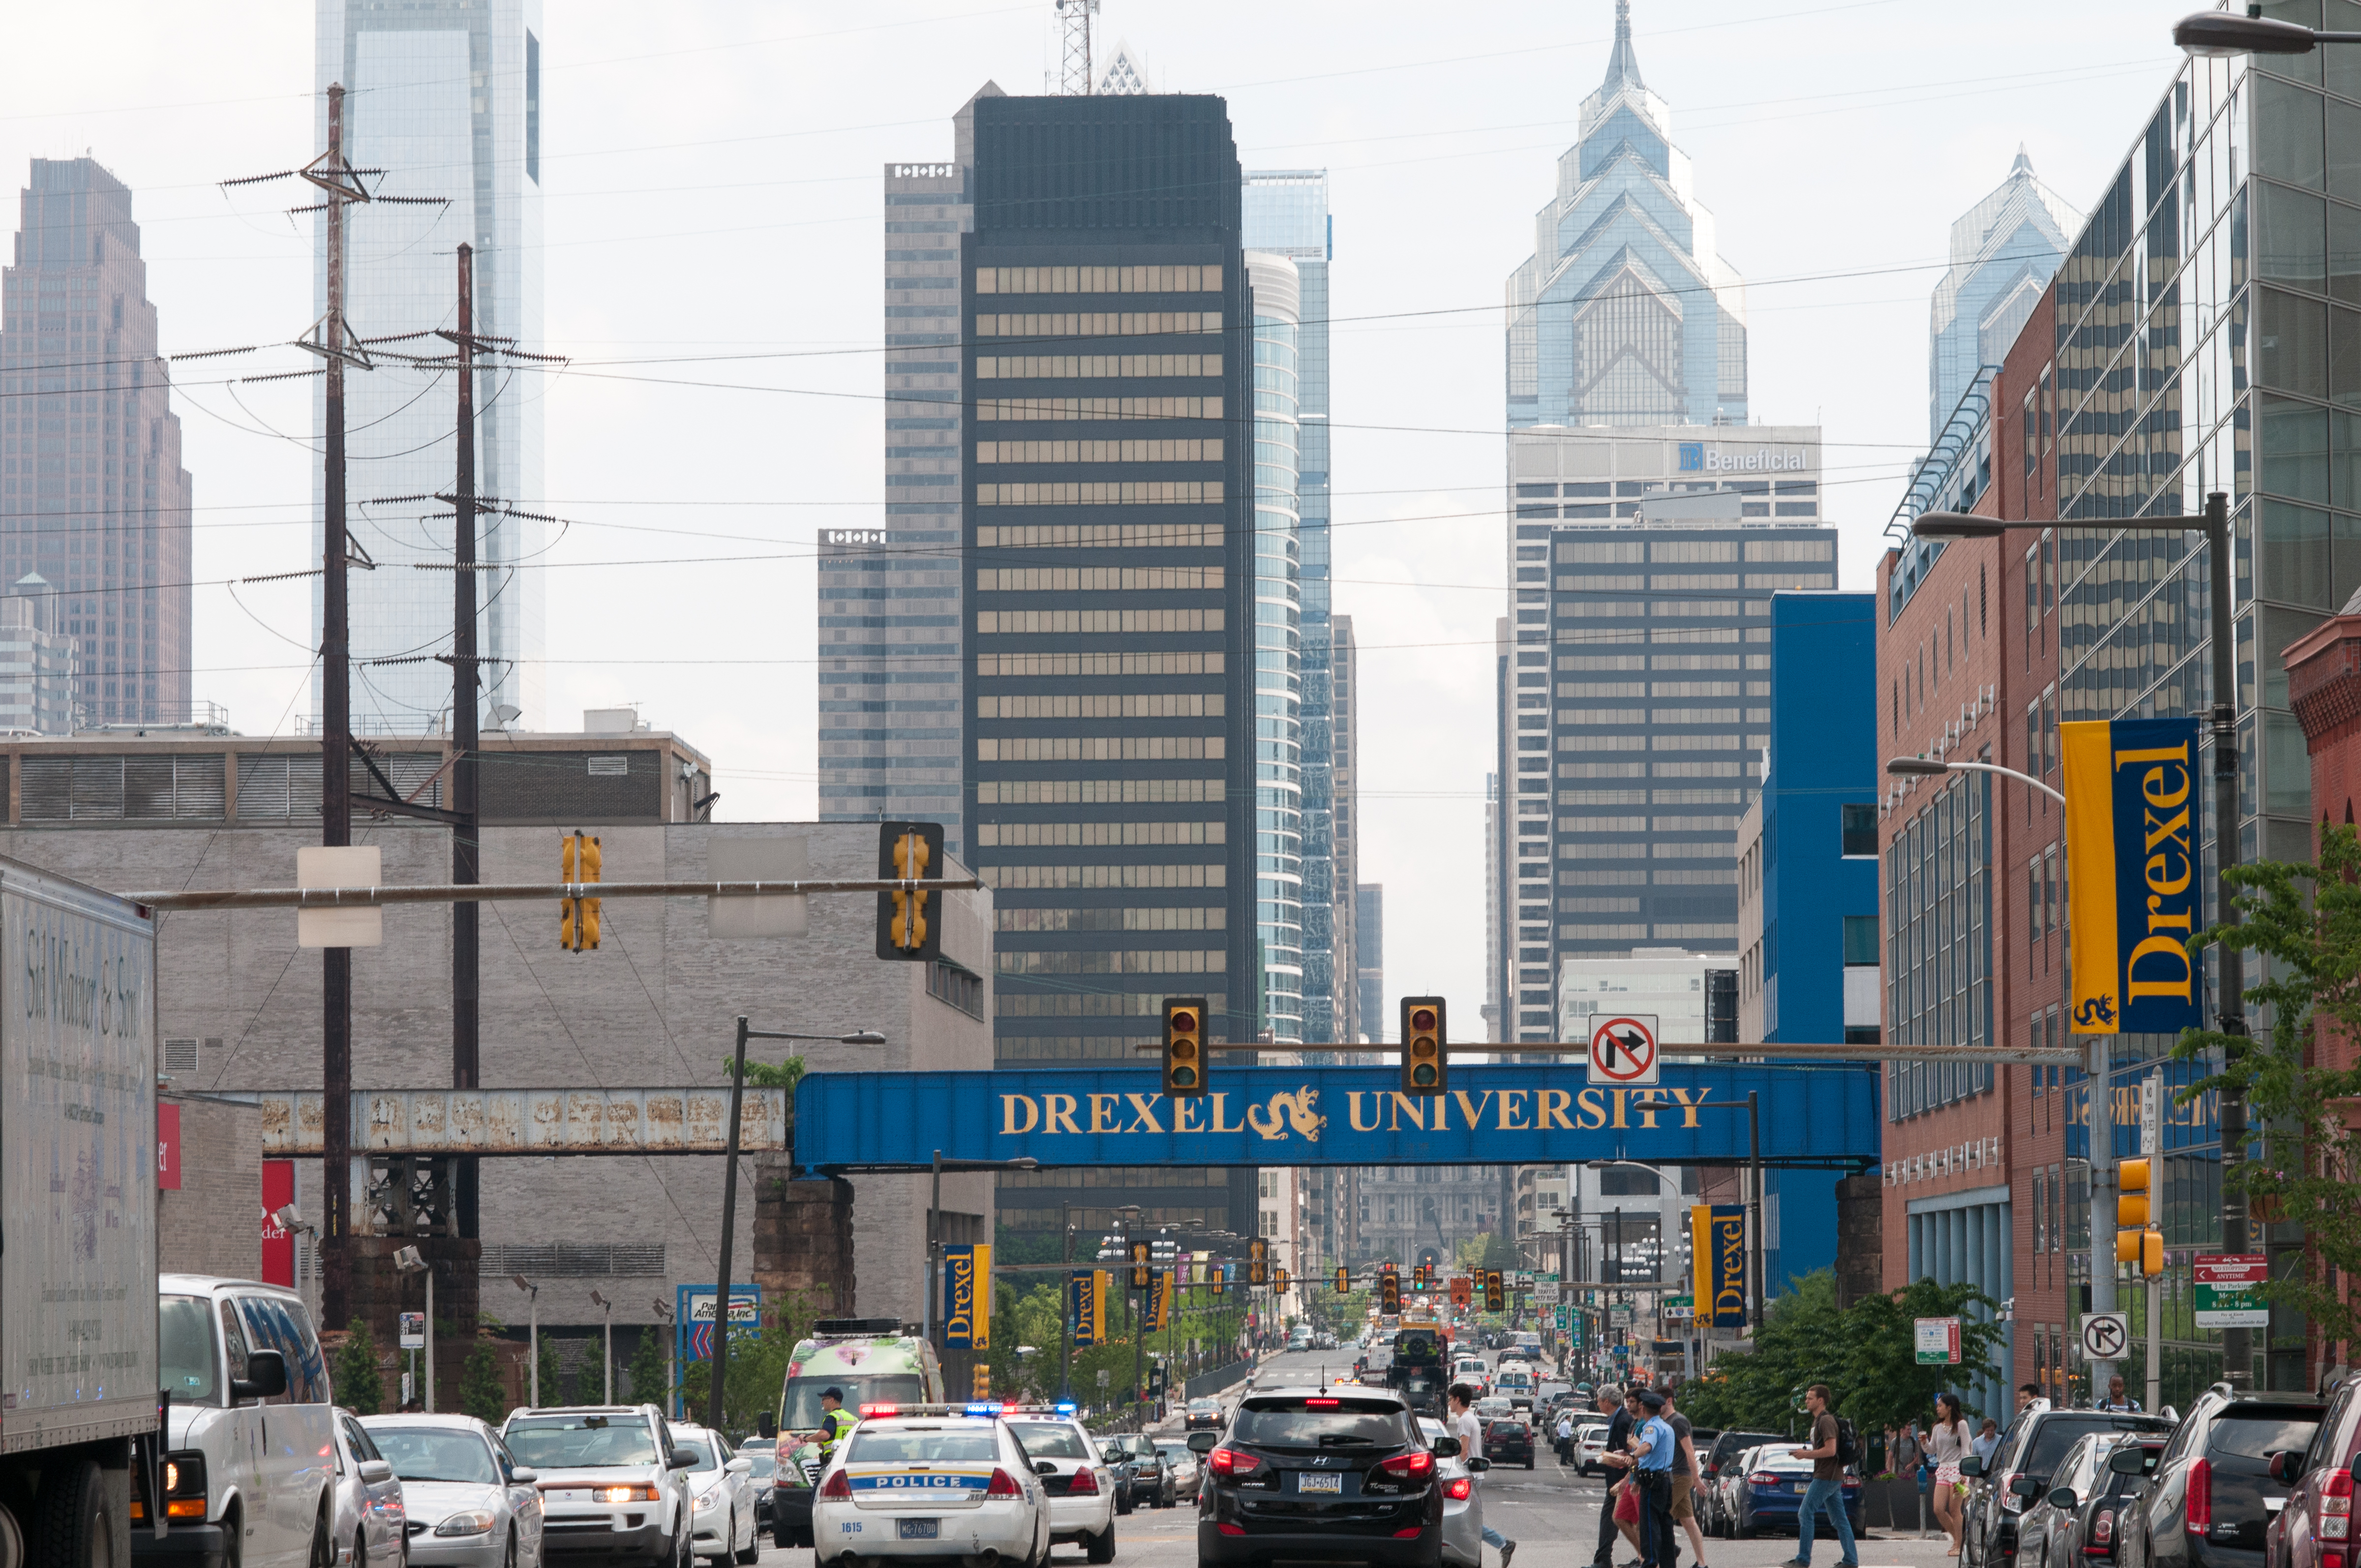 Drexel University Campus in the University City section of West Philadelphia June 13, 2014. Photo by Shutterstock.